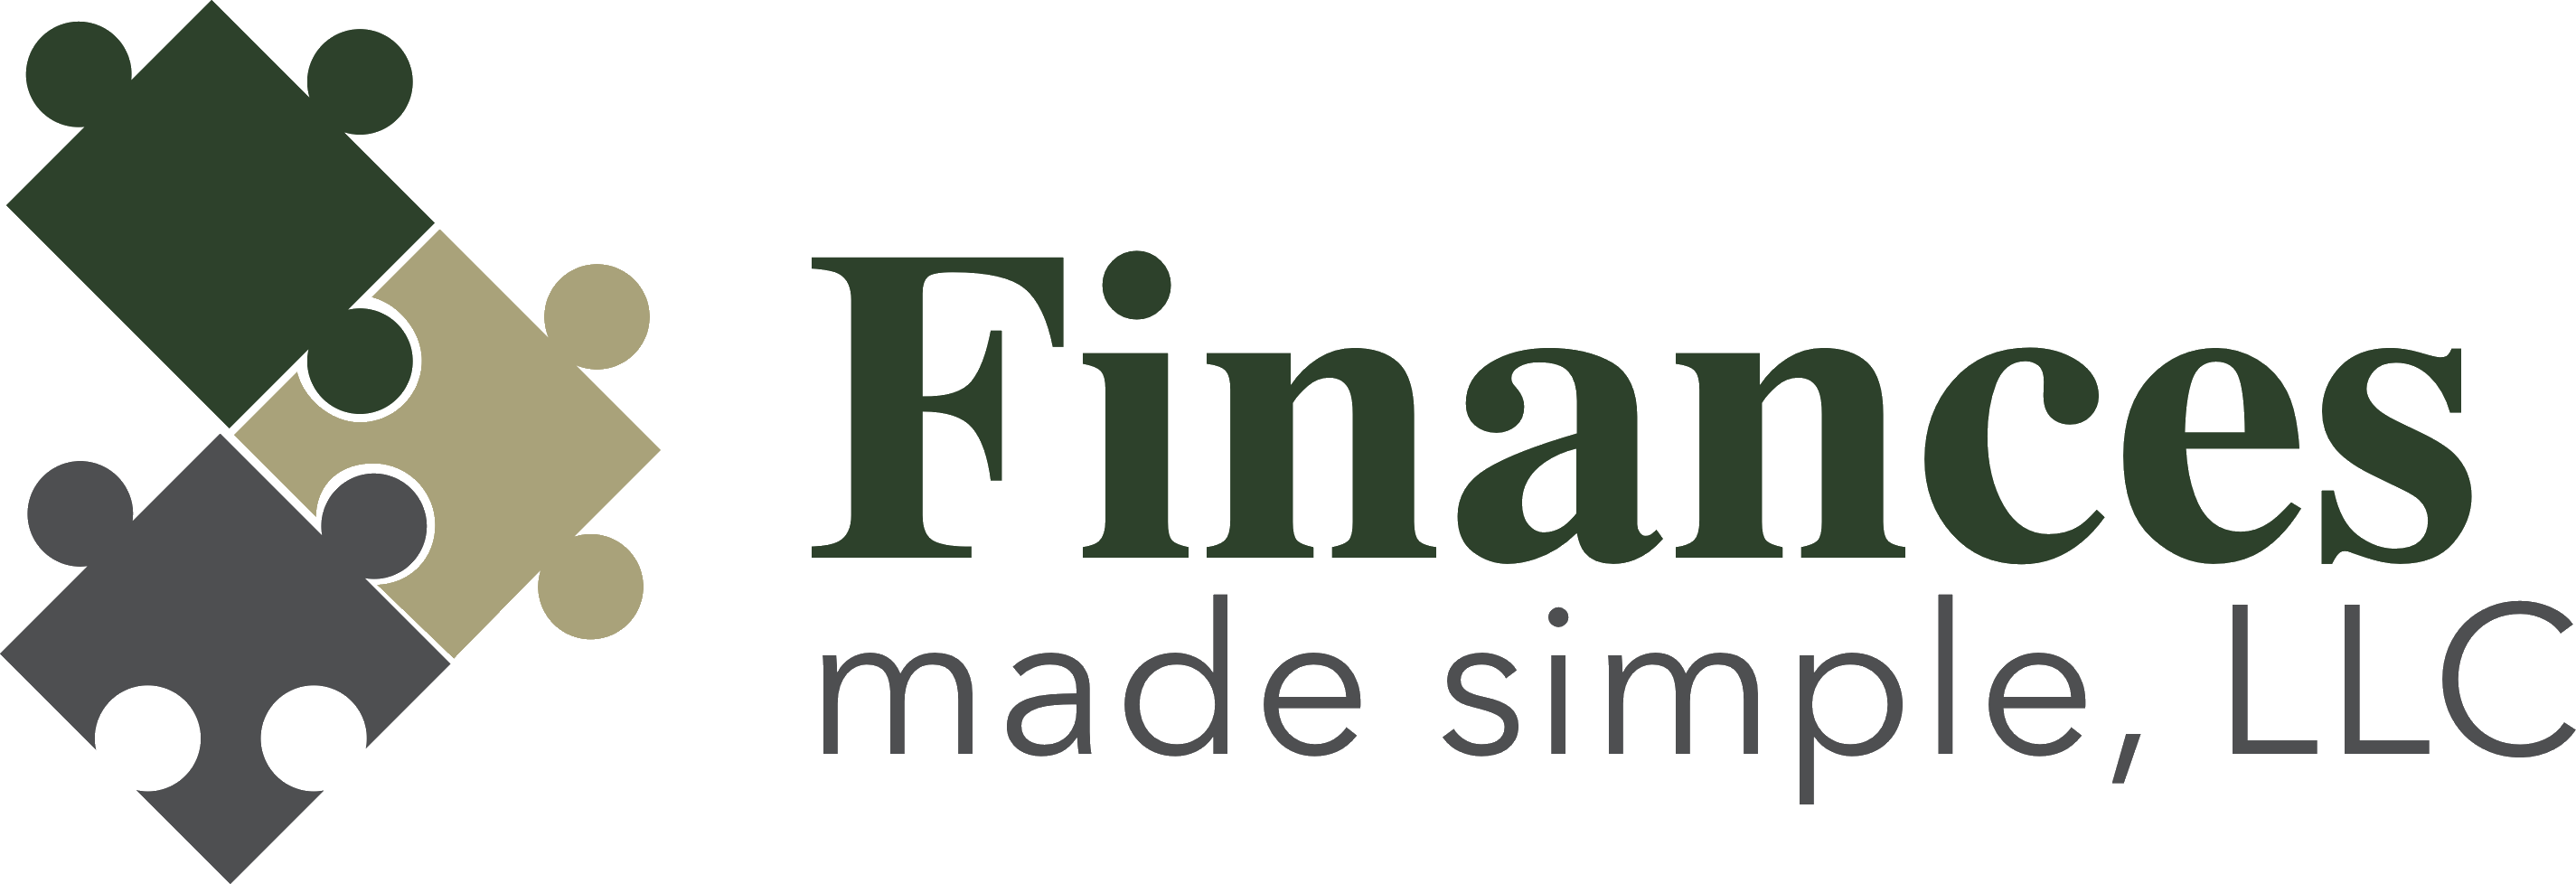 finances made simple logo